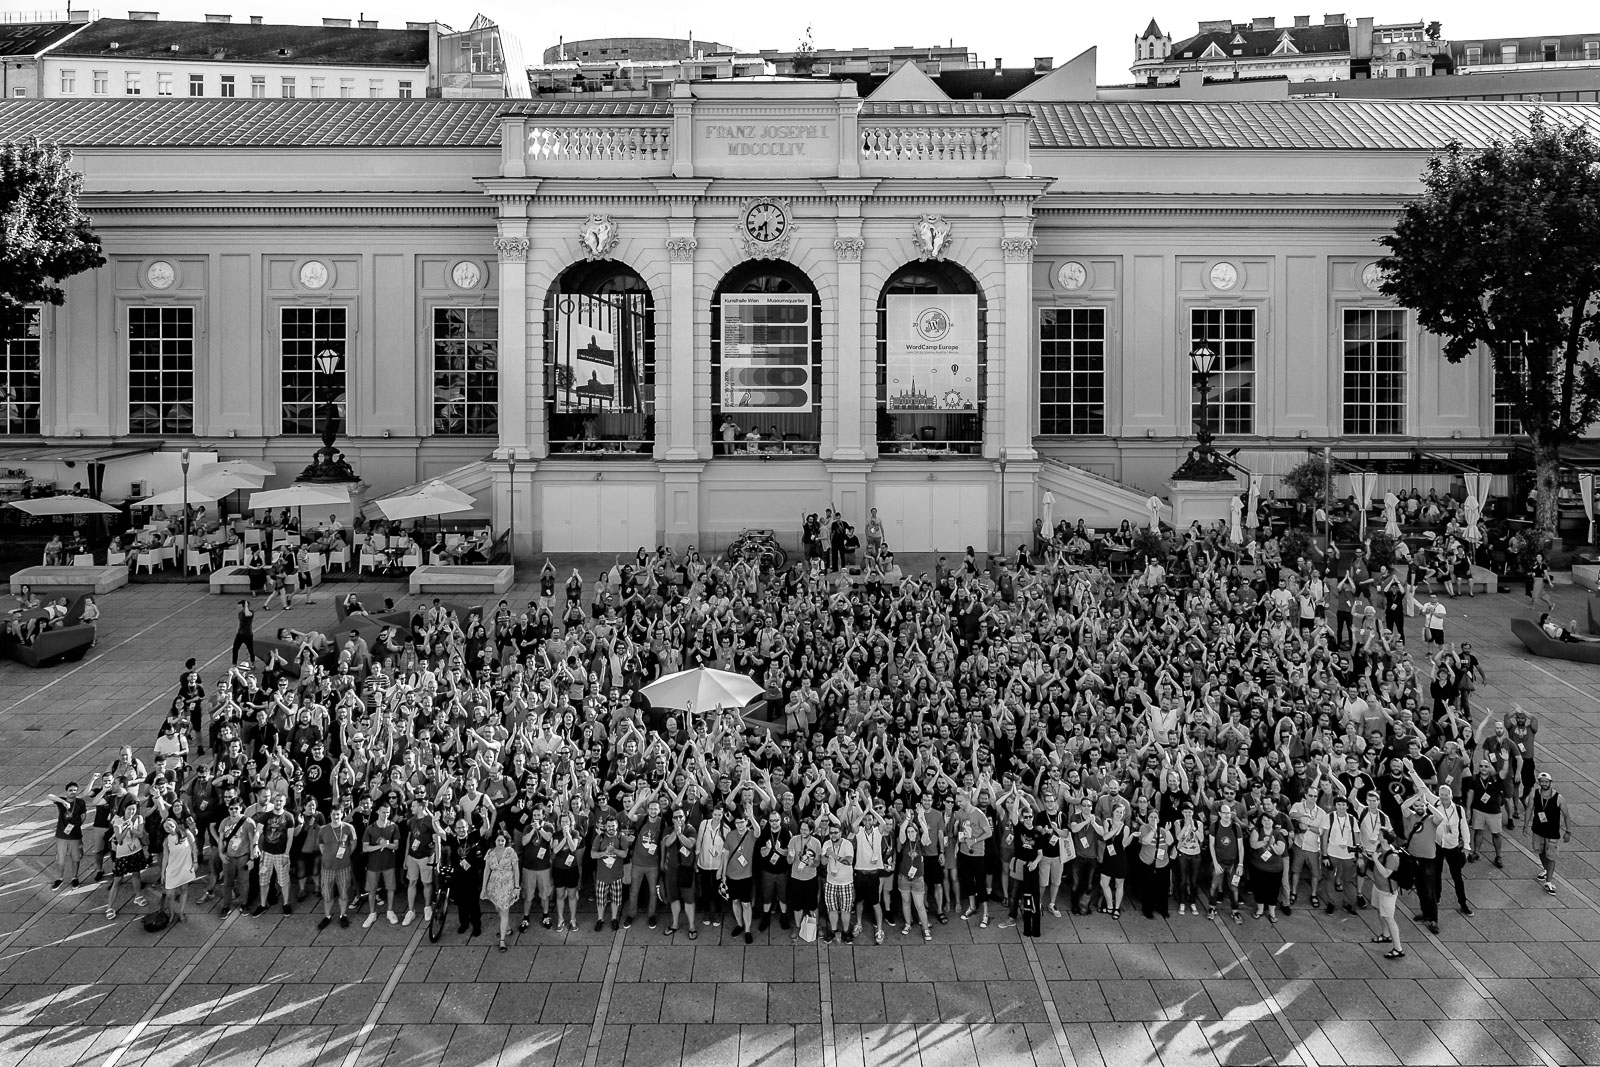 Group Photo of all attendees of WordCamp Europe 2016 in Vienna.